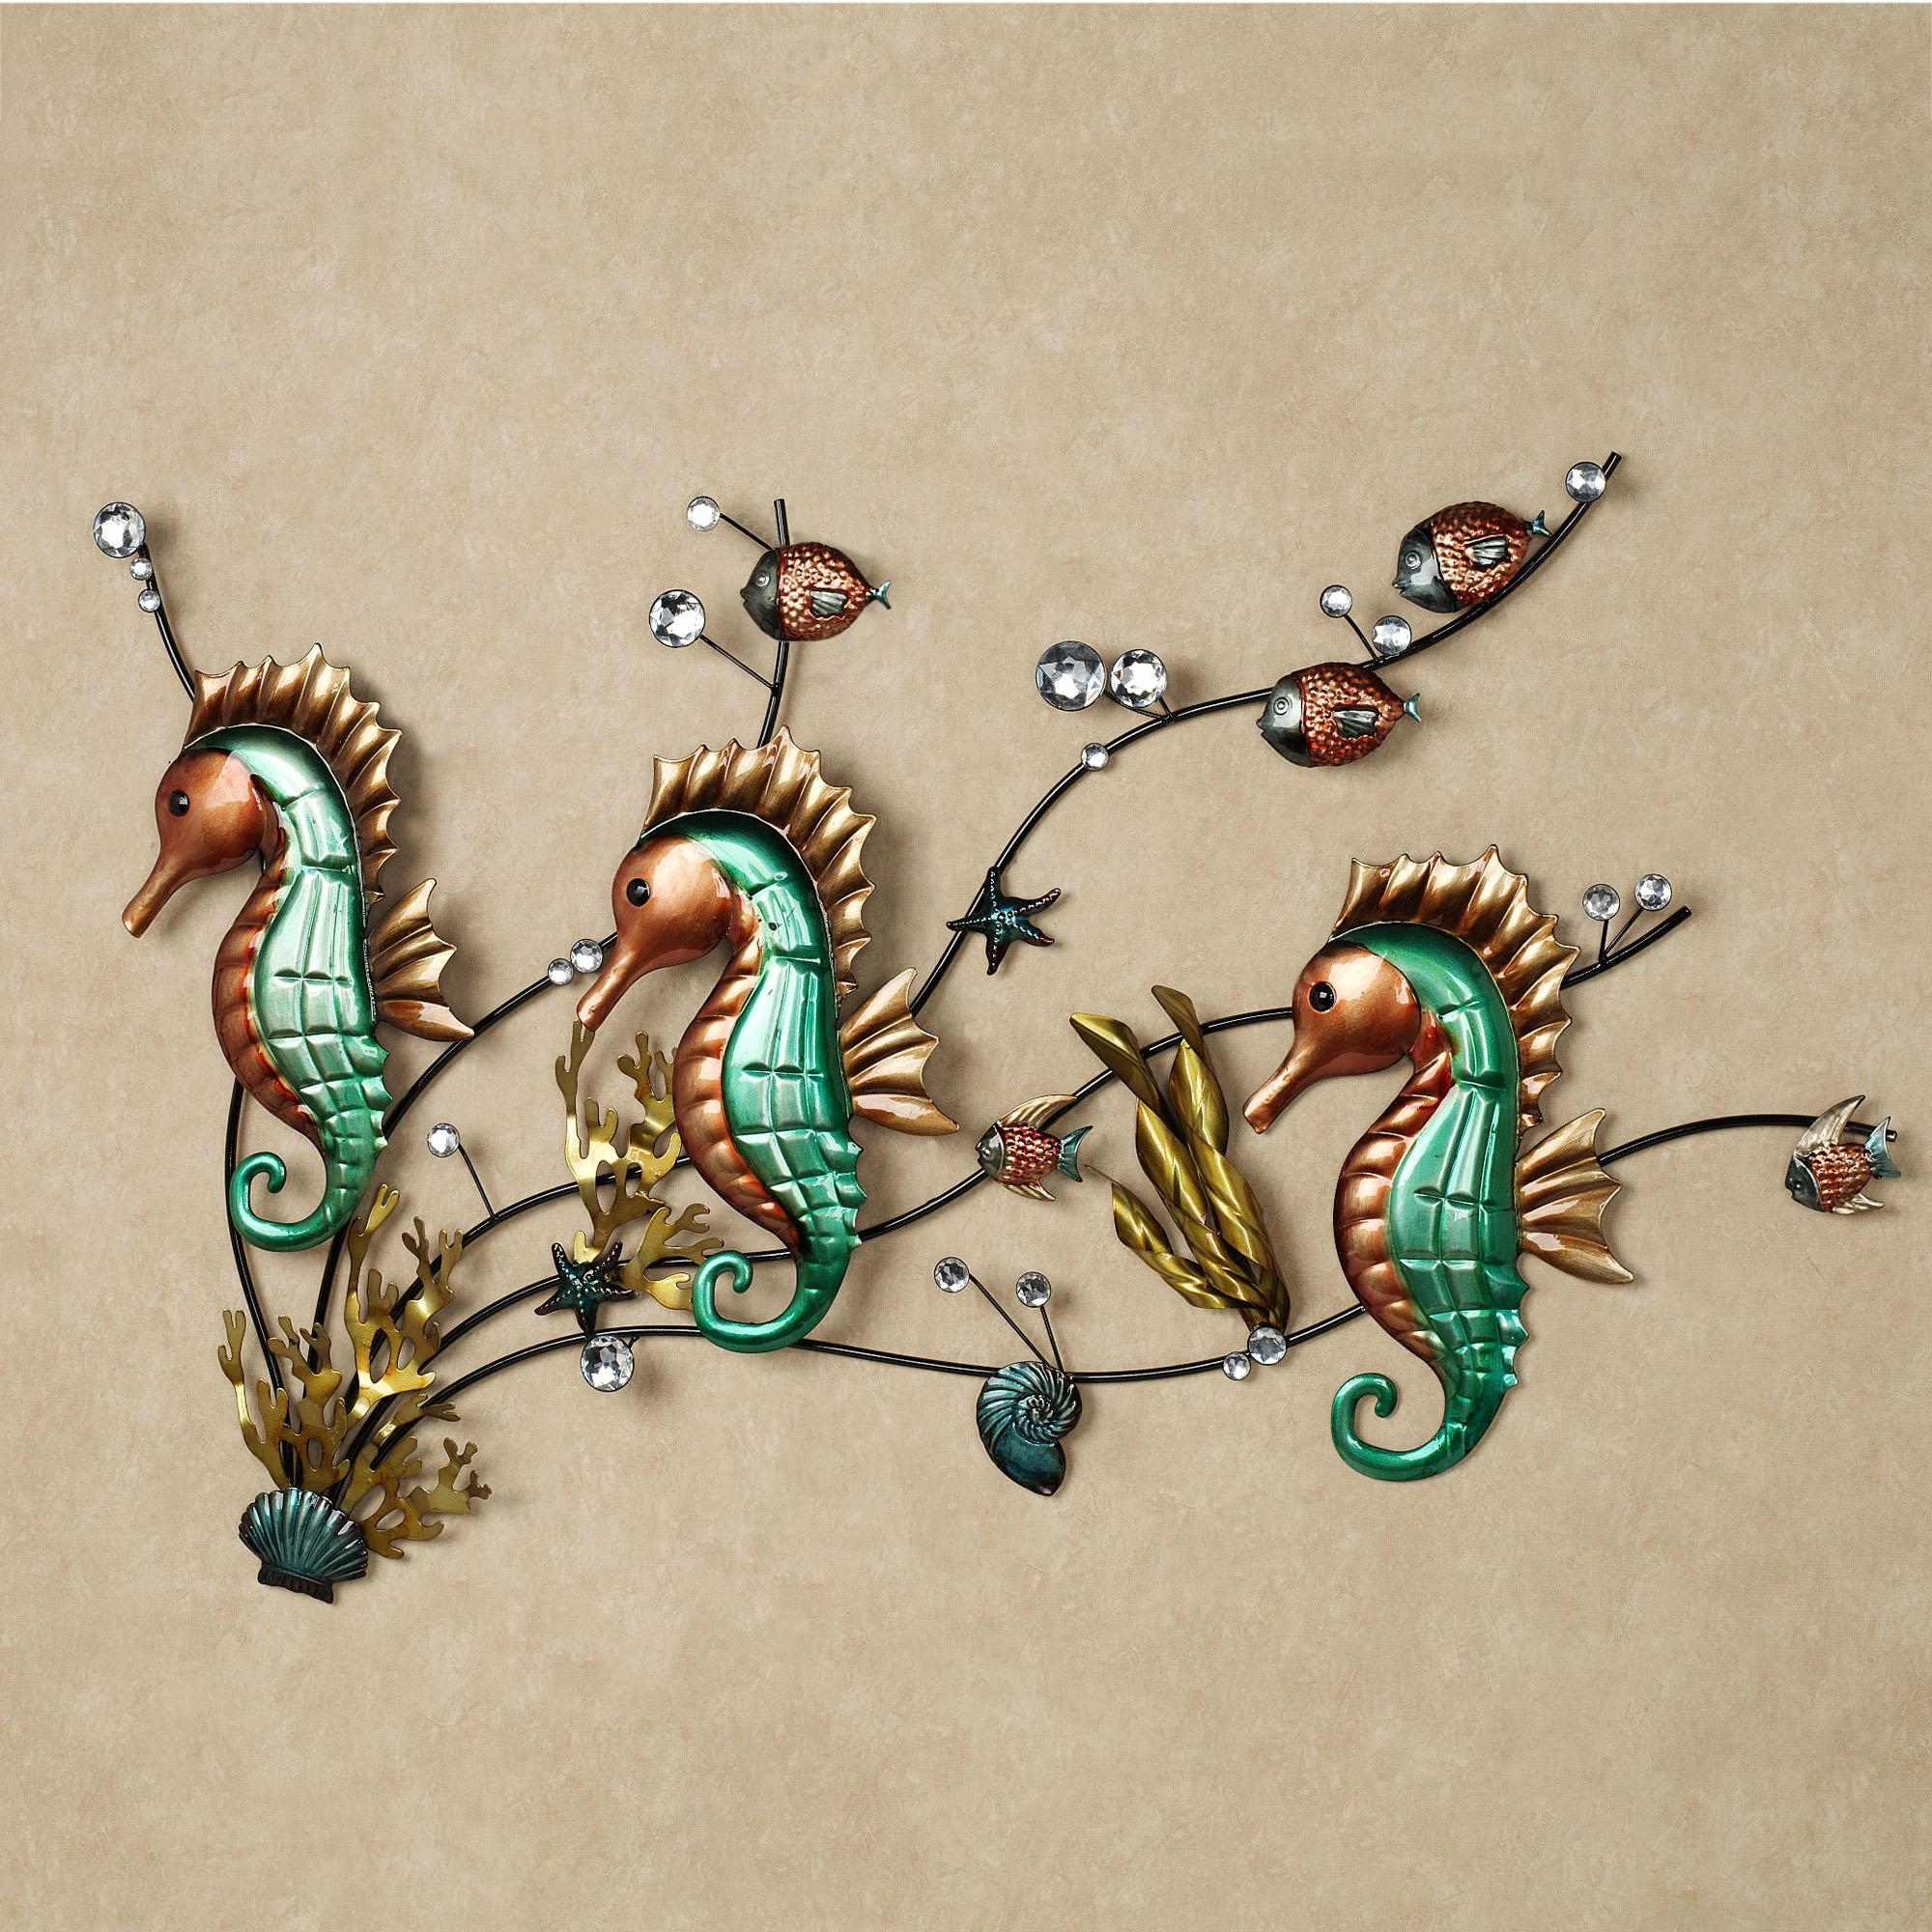 Metal Seahorse Wall Decor : Seahorse Wall Decor A Baby's Bedroom With Sea Horse Wall Art (Image 6 of 20)